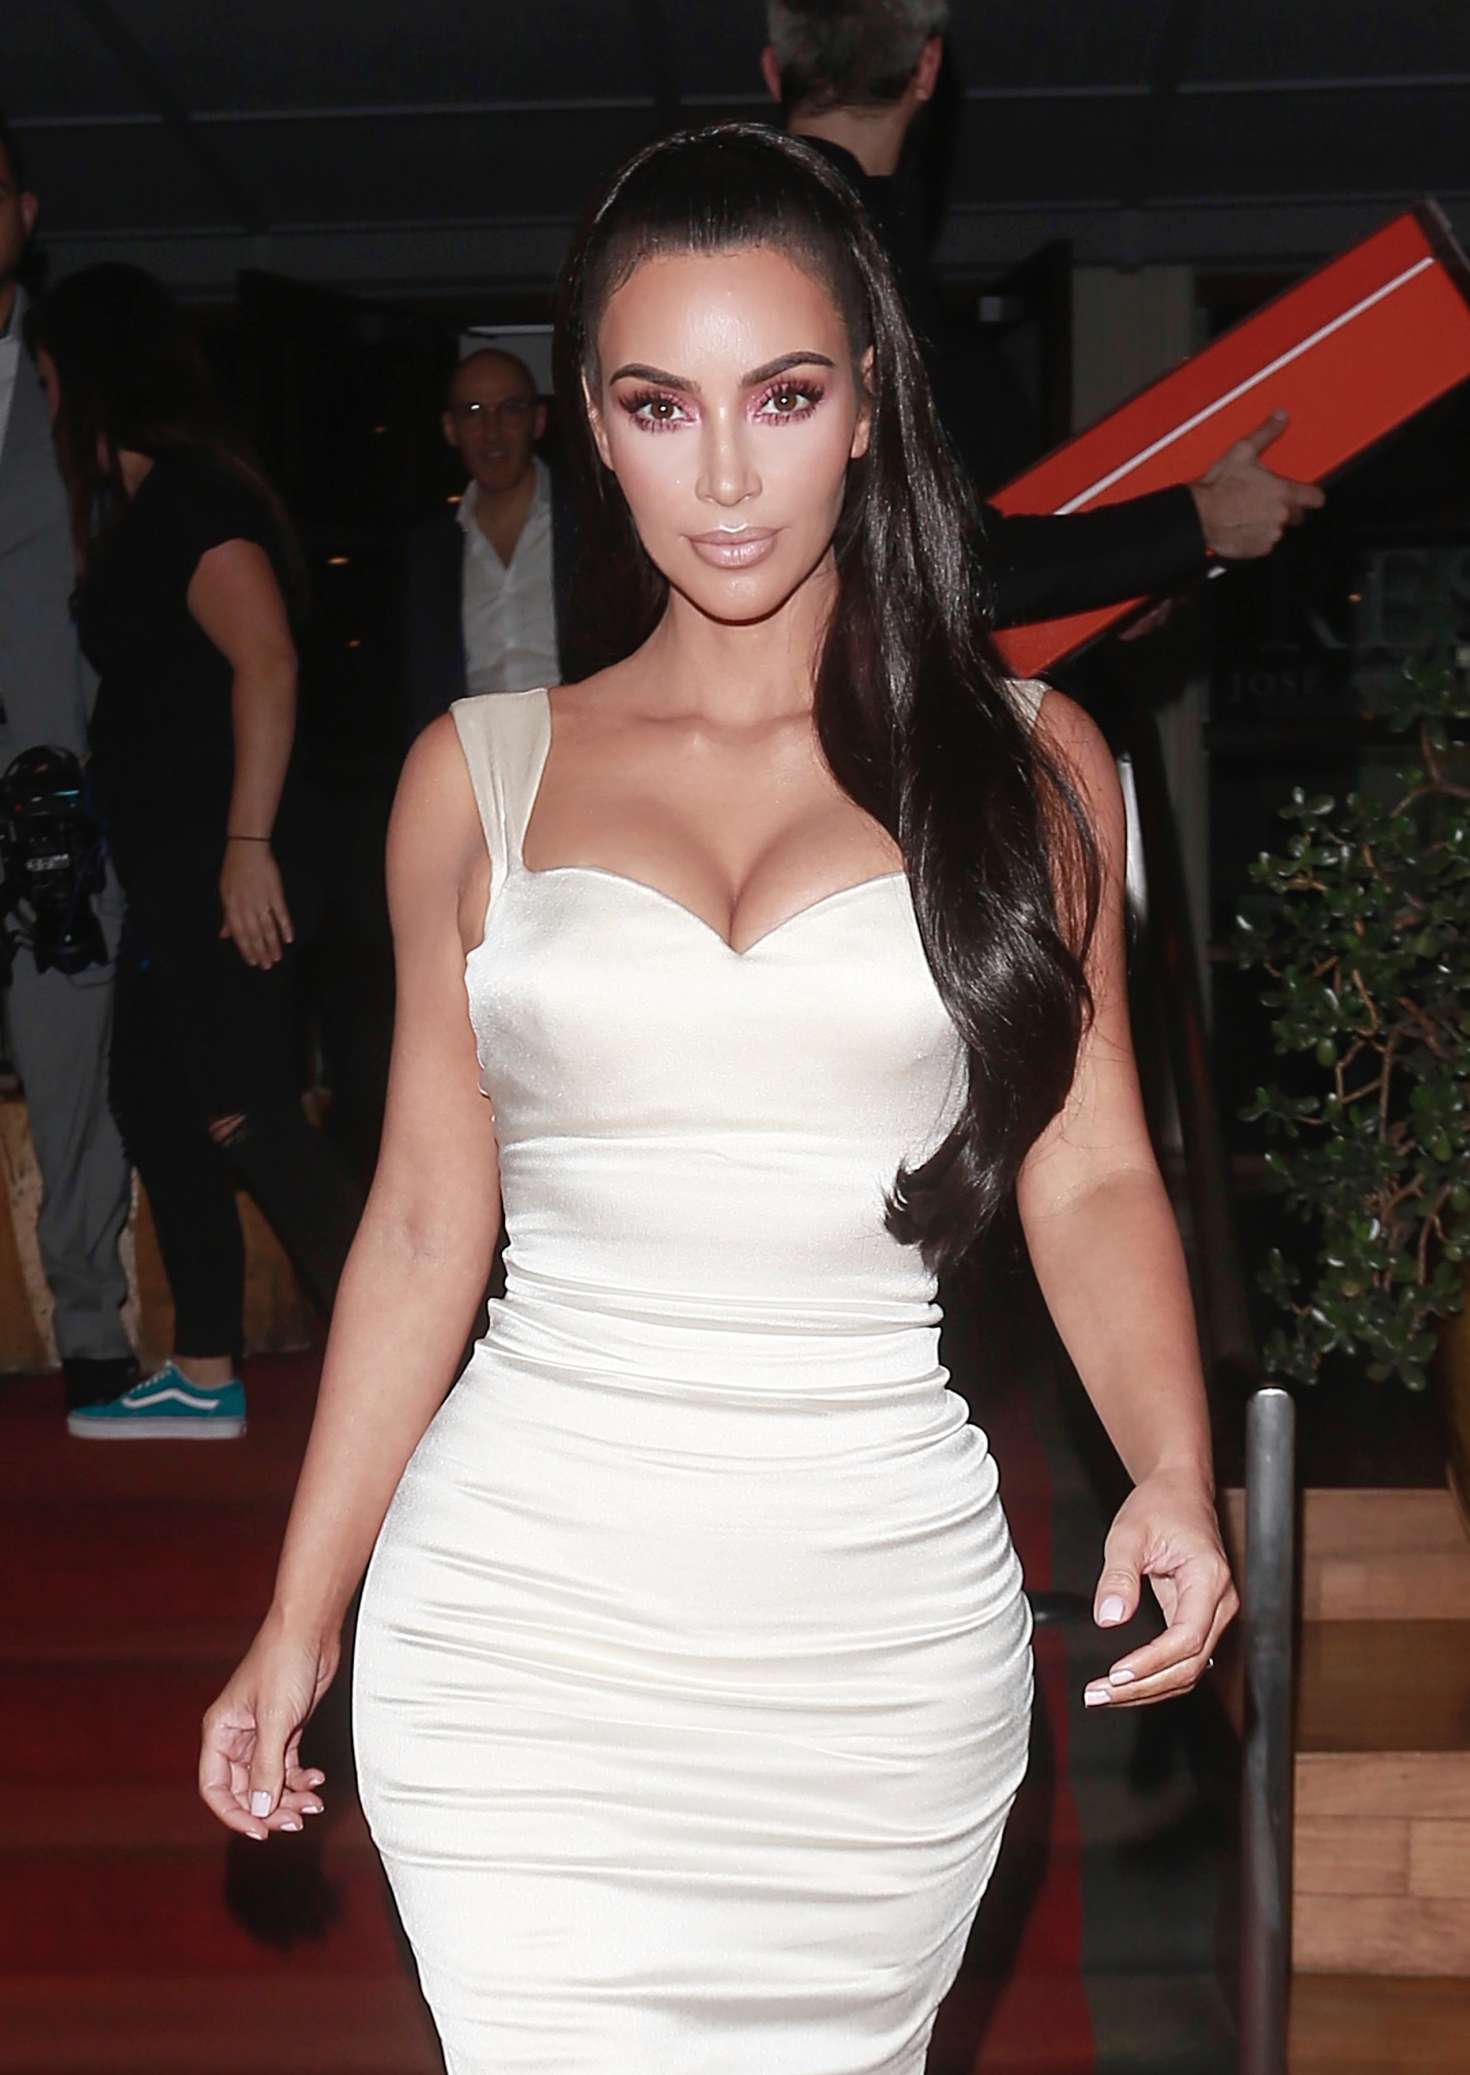 Kim Kardashian stunned in see-through PVC open toe sandals with high heel and PVC-straps